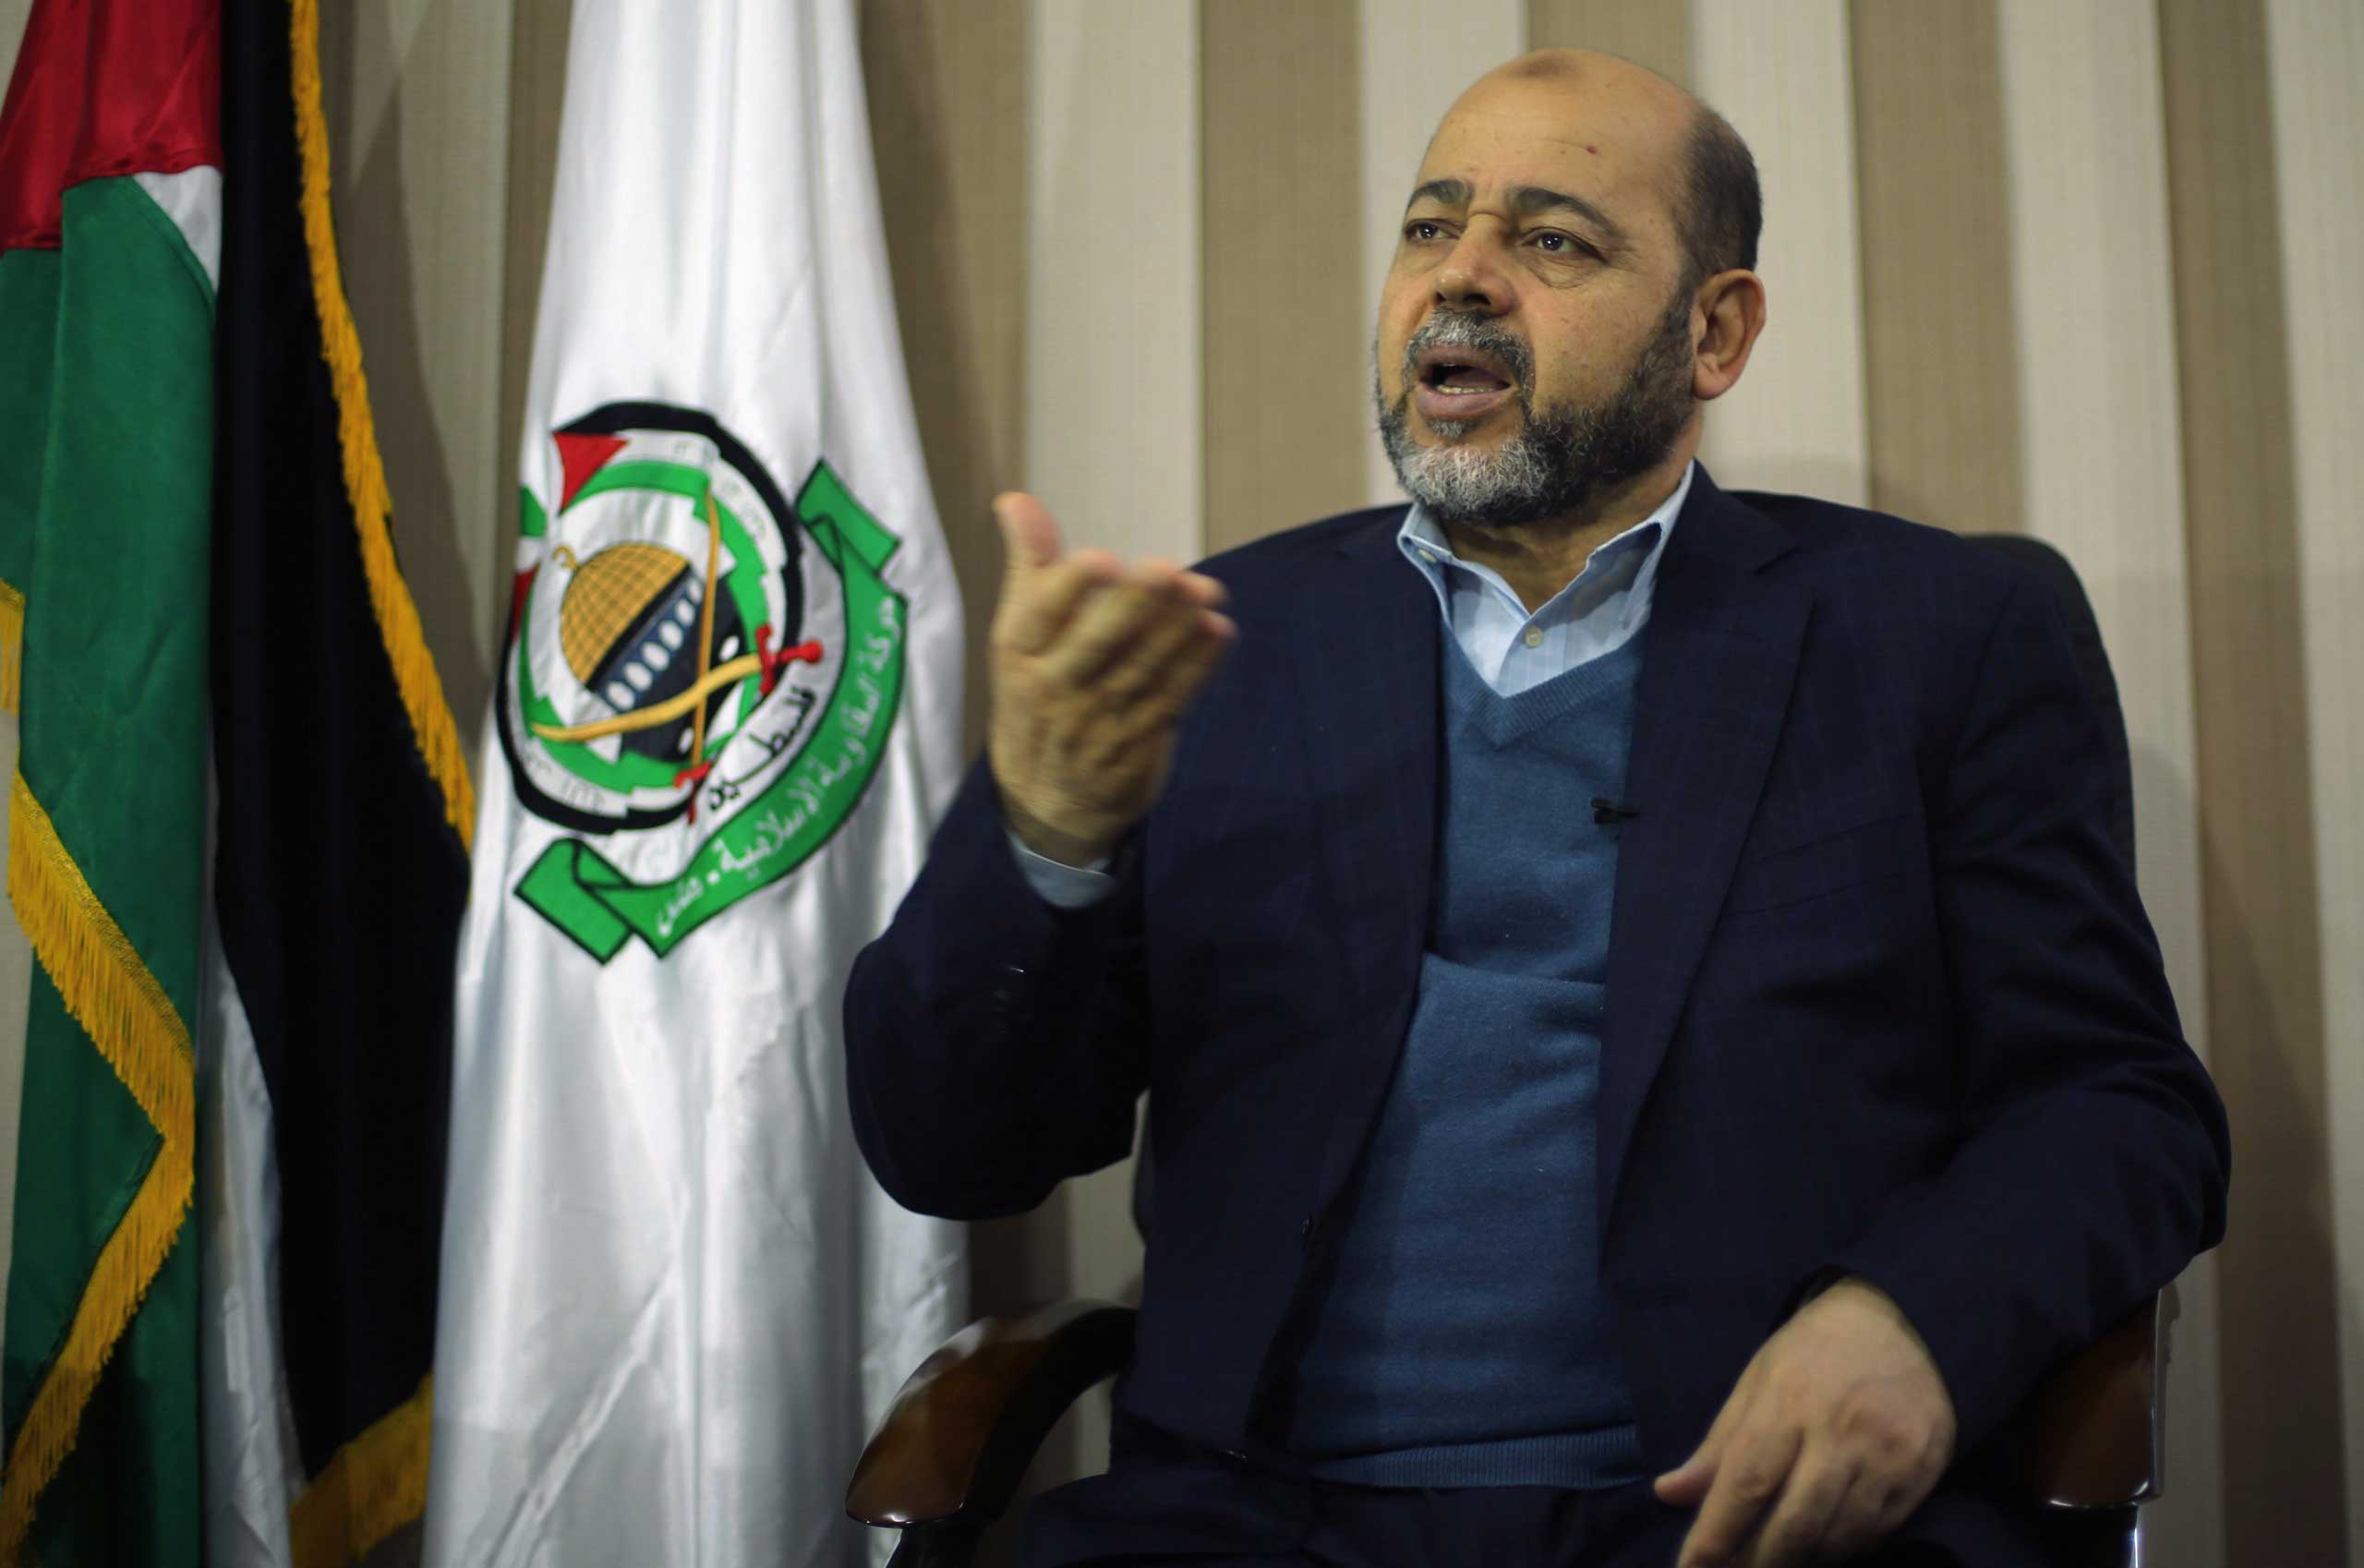 Deputy Hamas chief Moussa Abu Marzouk gestures during an interview with Reuters in Gaza City, Dec. 17, 2014.